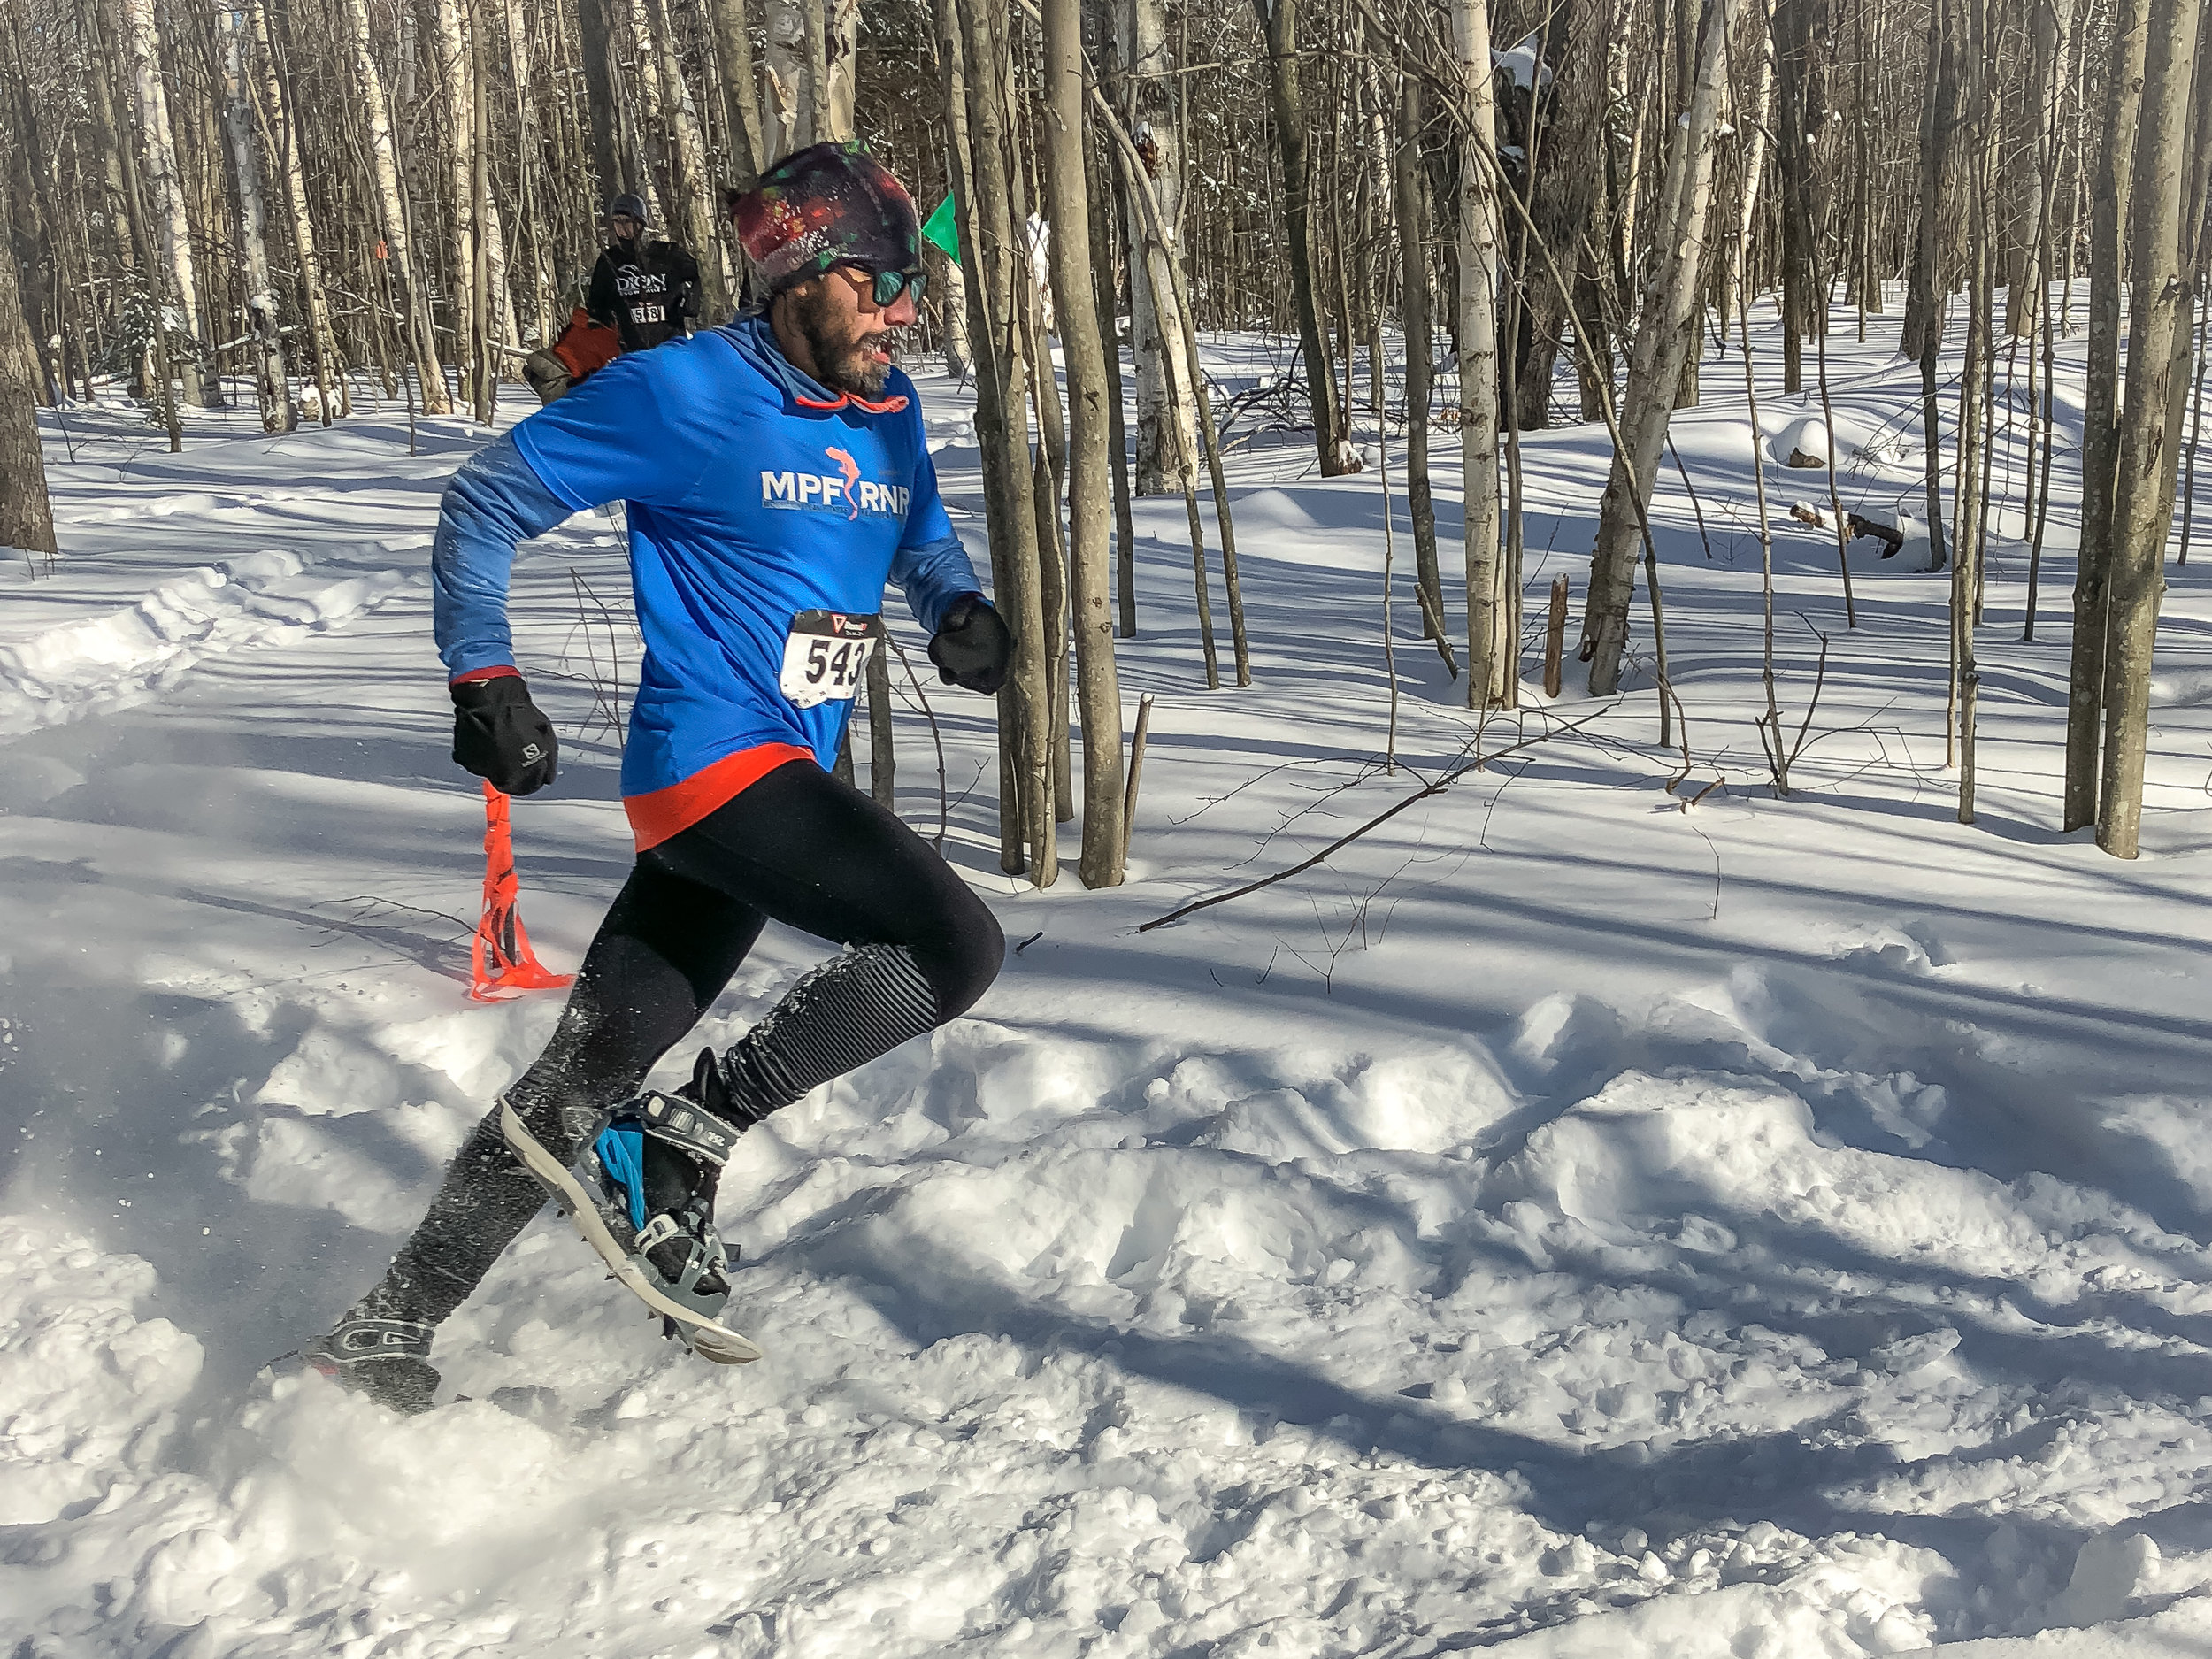 Putting the Alpine 2 to the test at the 2018 North American Snowshoe Championships in Saranac, New York! It was -15º at the start!